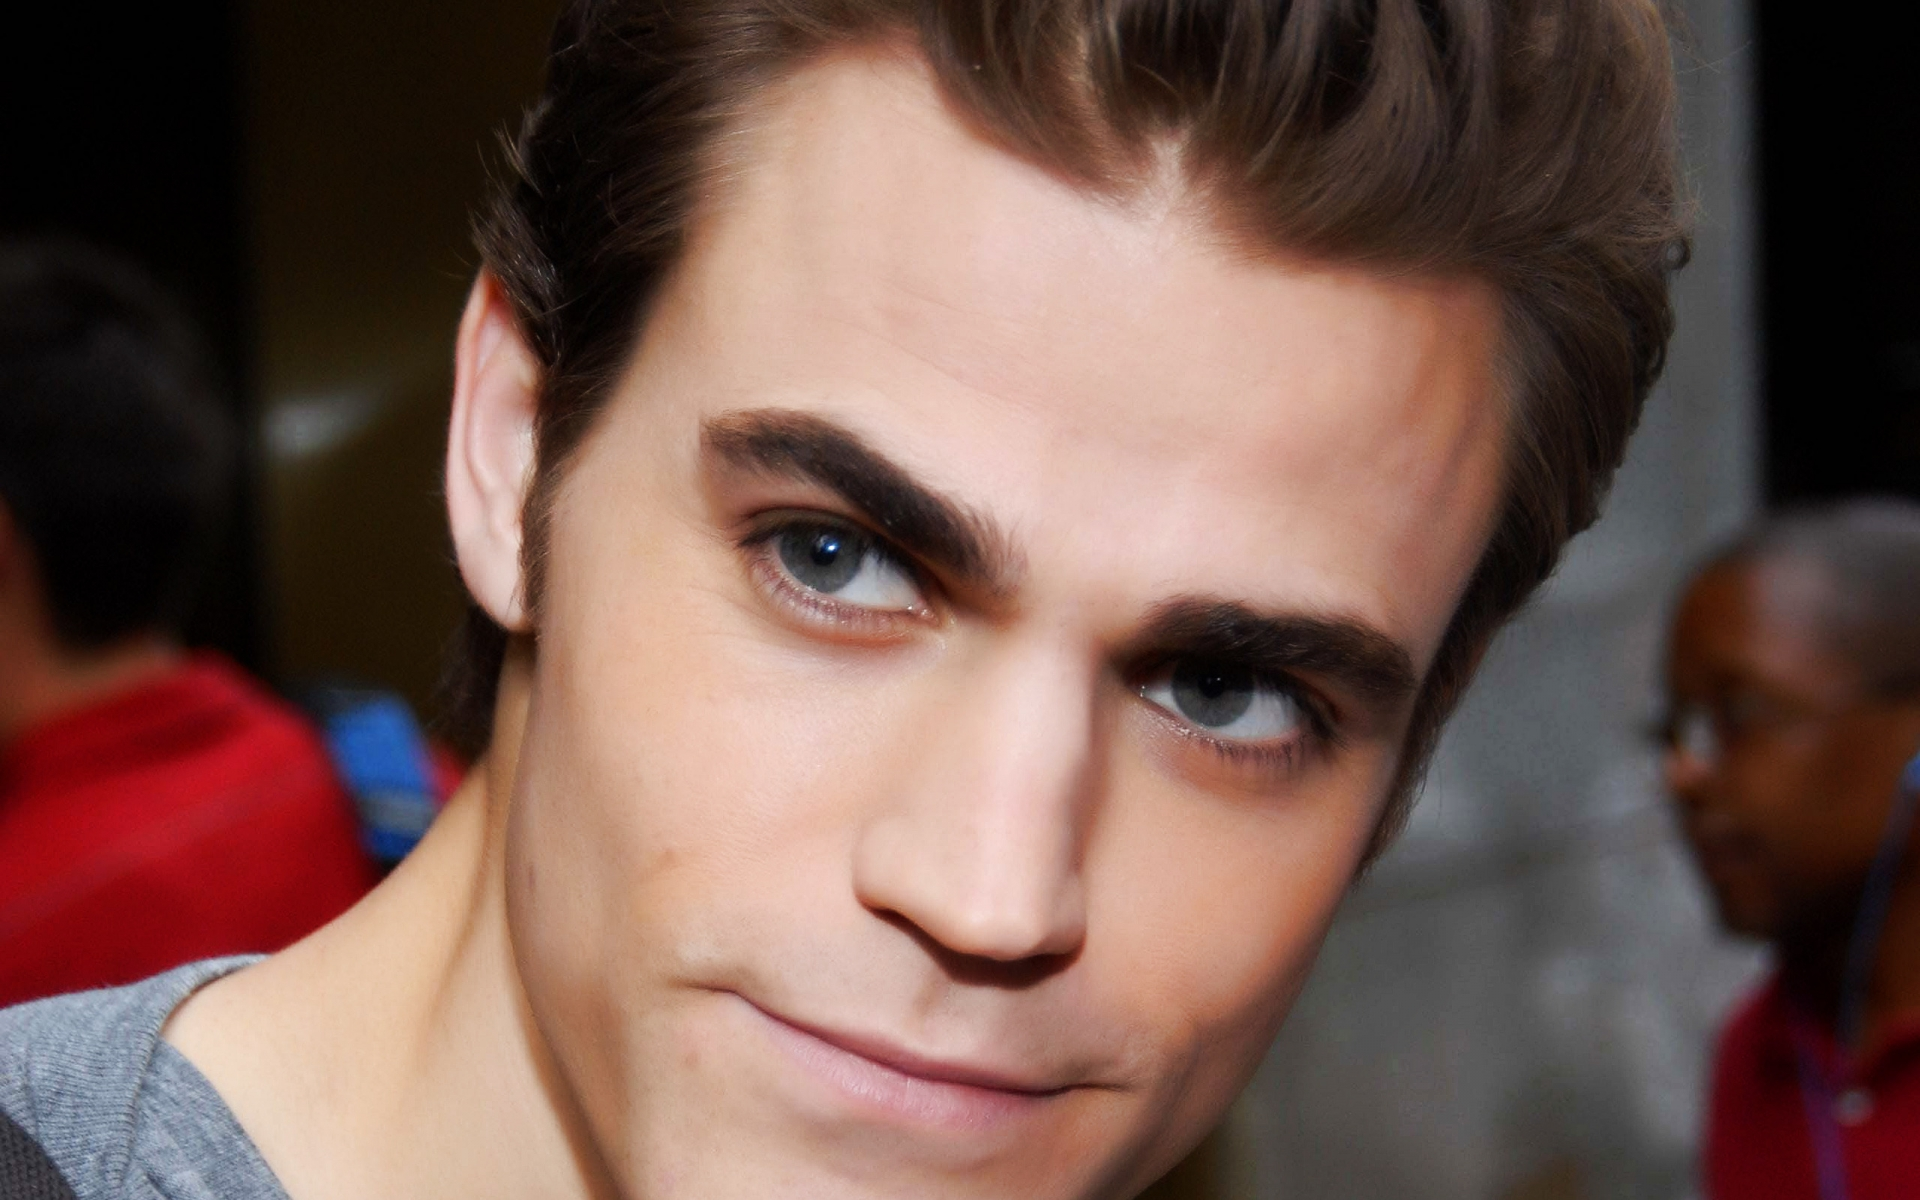 Paul Wesley Close Up for 1920 x 1200 widescreen resolution